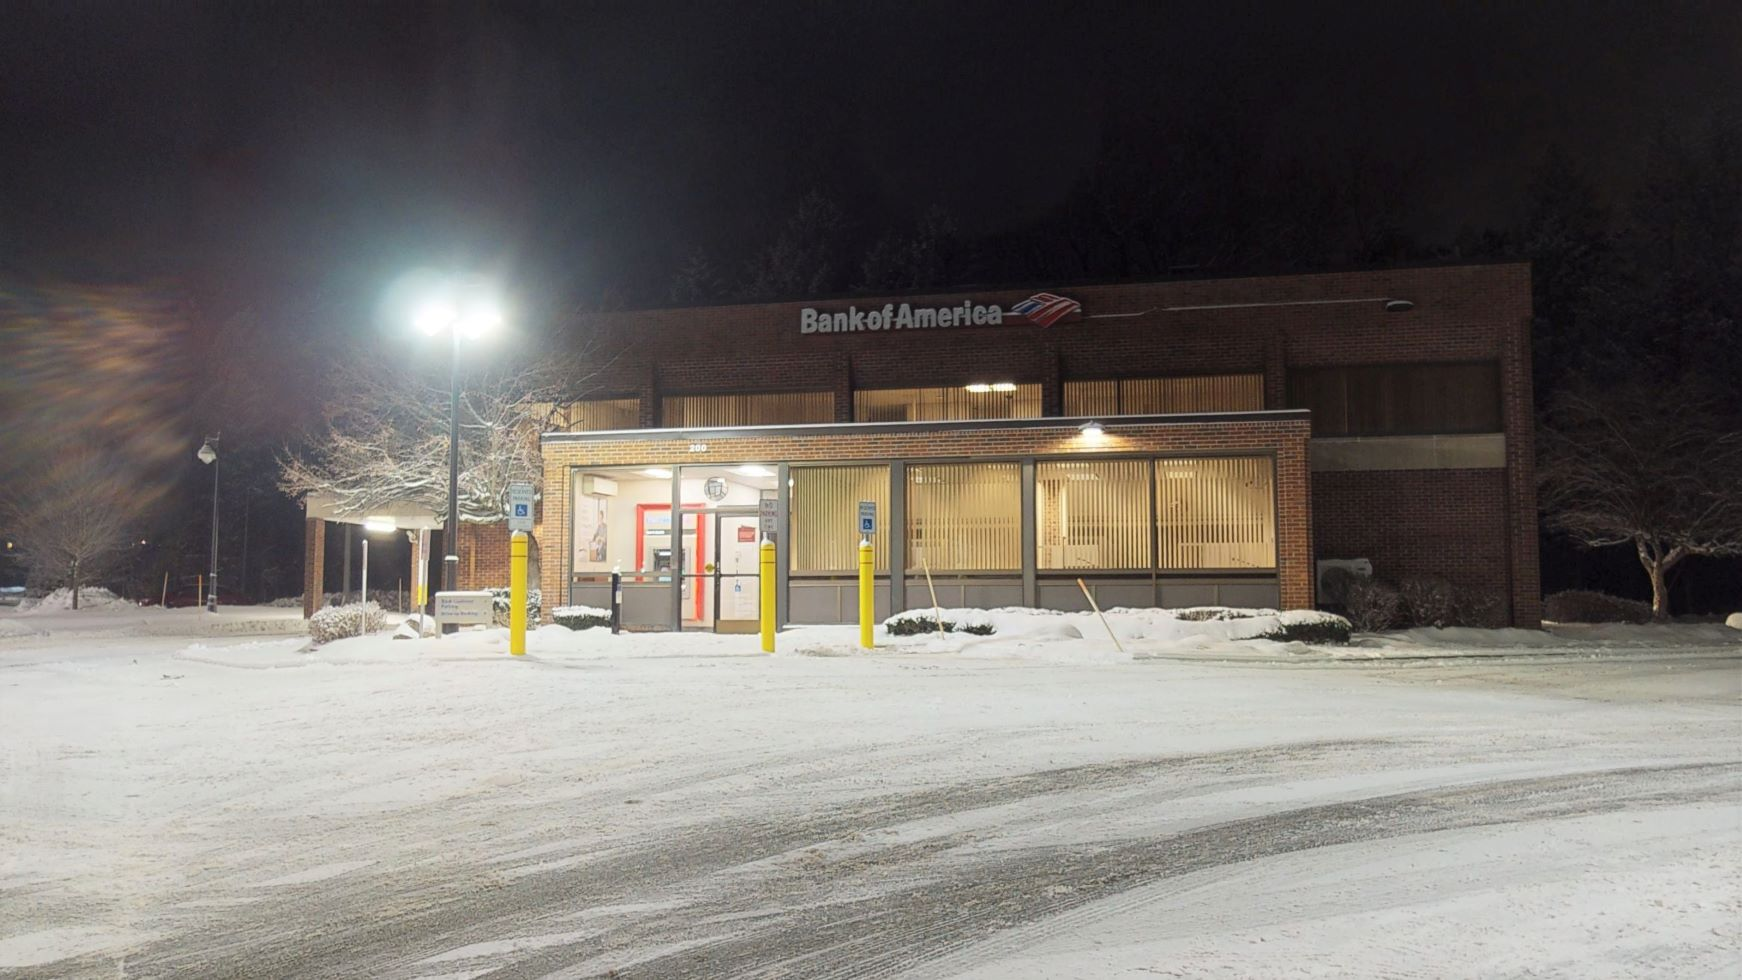 Bank of America financial center with drive-thru ATM   200 Saratoga Rd, Scotia, NY 12302